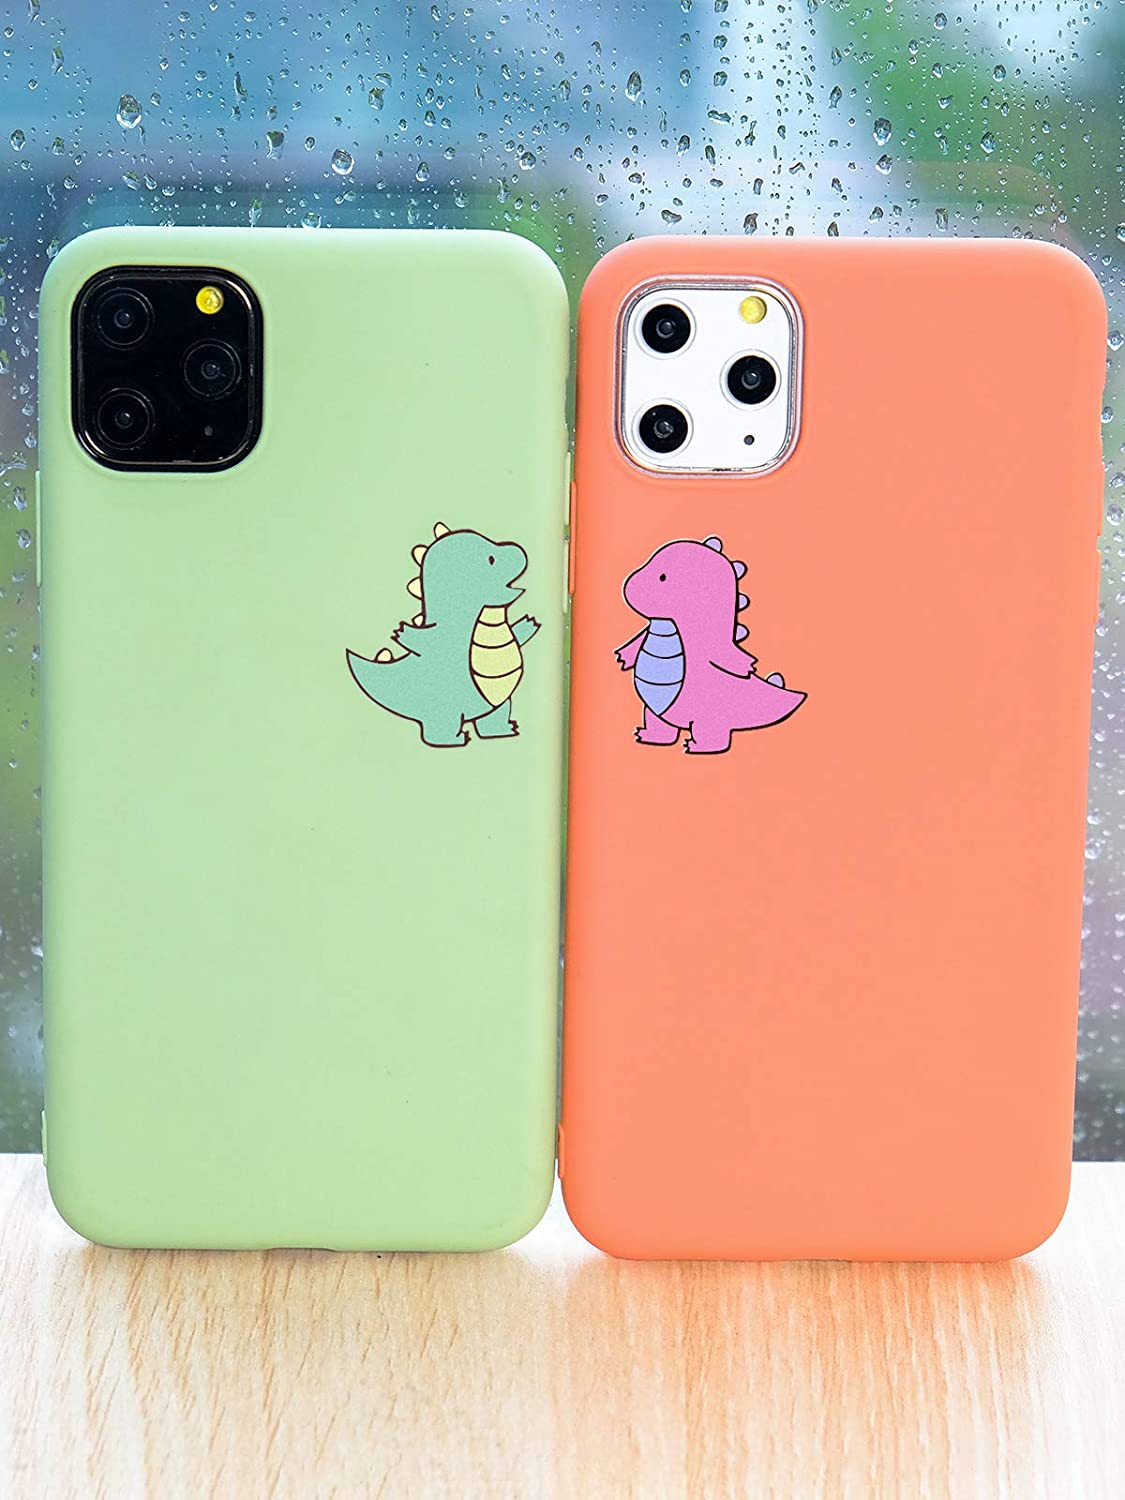 JOYLAND Coral Couple Phone Case Cover for iPhone 6 Plus/6S Plus Dinosaur Case Cute Cartoon Lover Dinosaur Phone Case Cover Peach Color Silicone Bumper Pink Protective Shell for iPhone 6/6S Plus